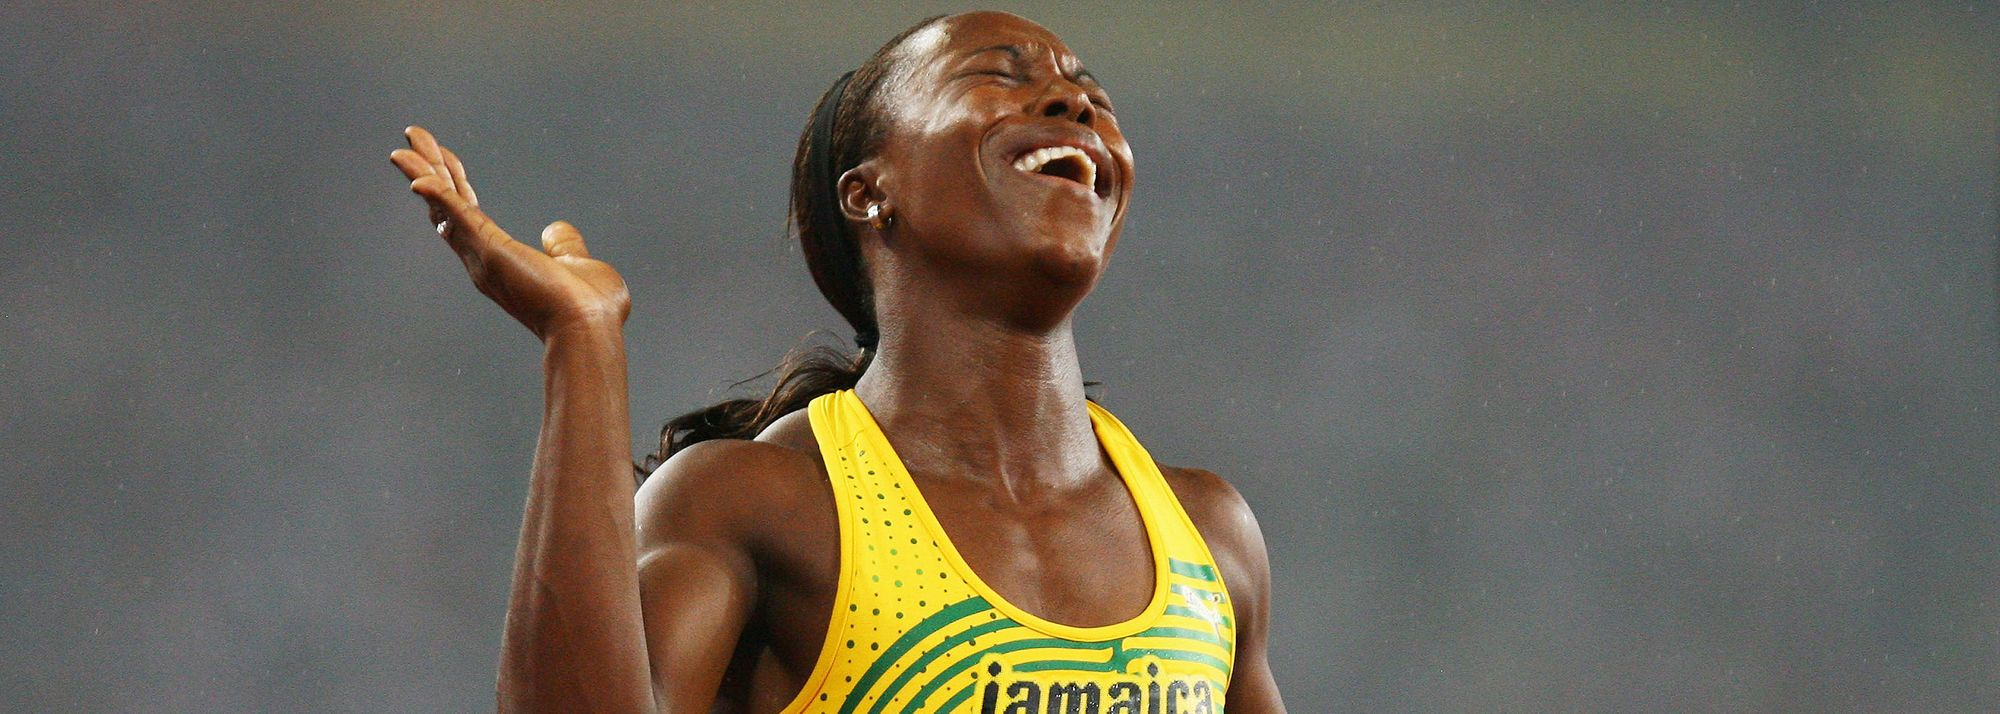 Jamaican sprinter Veronica Campbell-Brown, winner of eight Olympic medals and five world titles, has announced her retirement from competitive athletics.